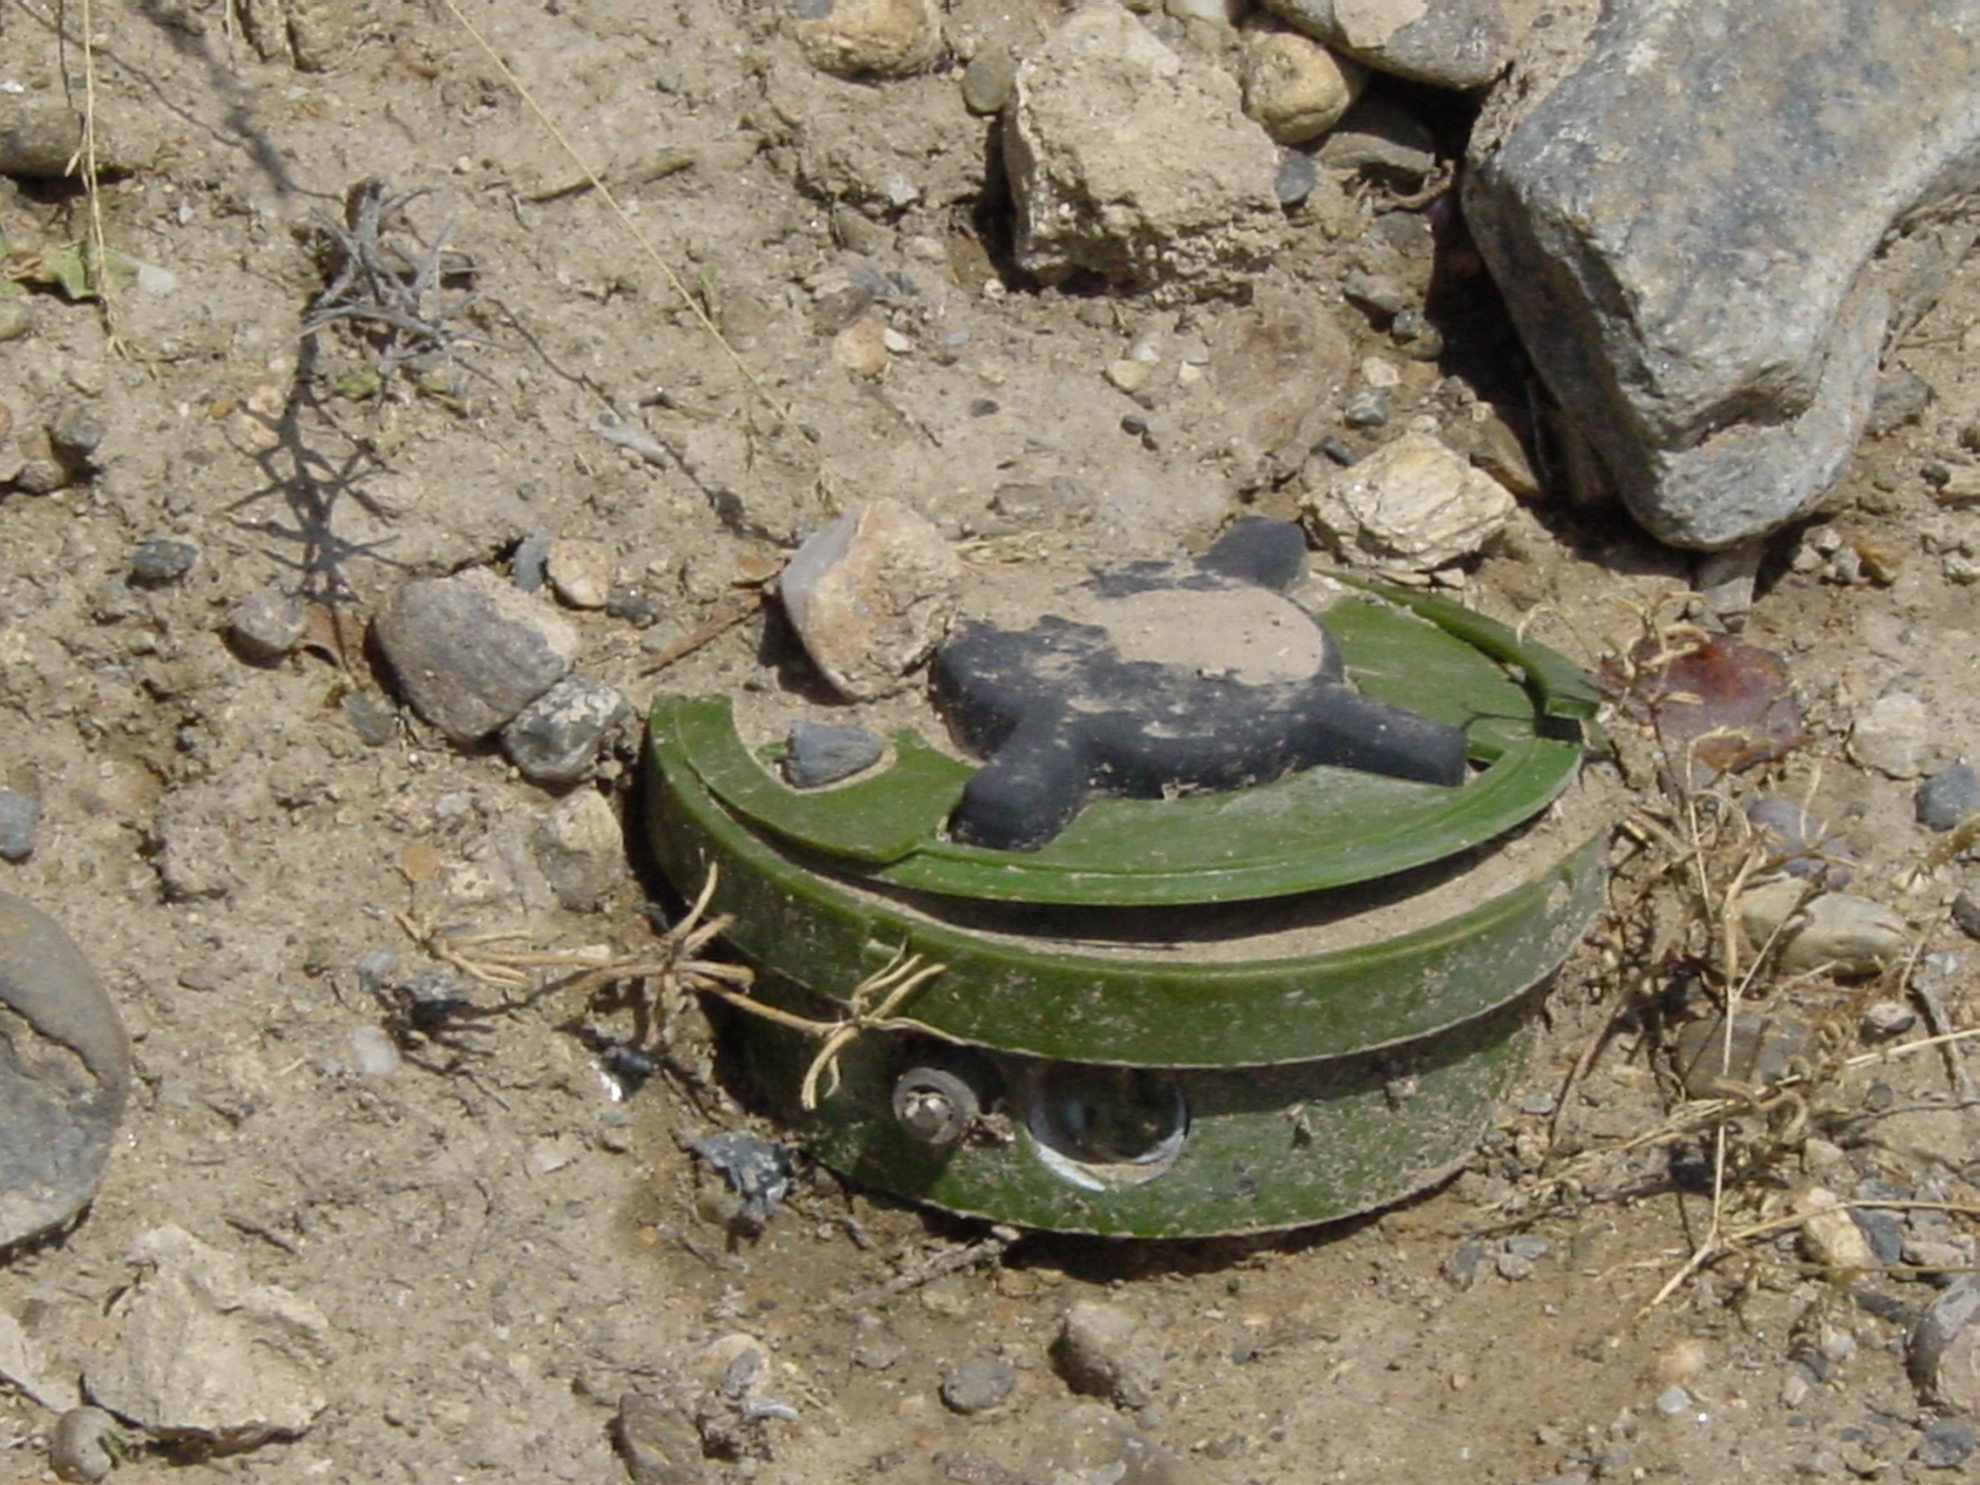 Sadly, not many mines are as easy to spot as this one. Photo: Jens Kjær Jensen, 2003